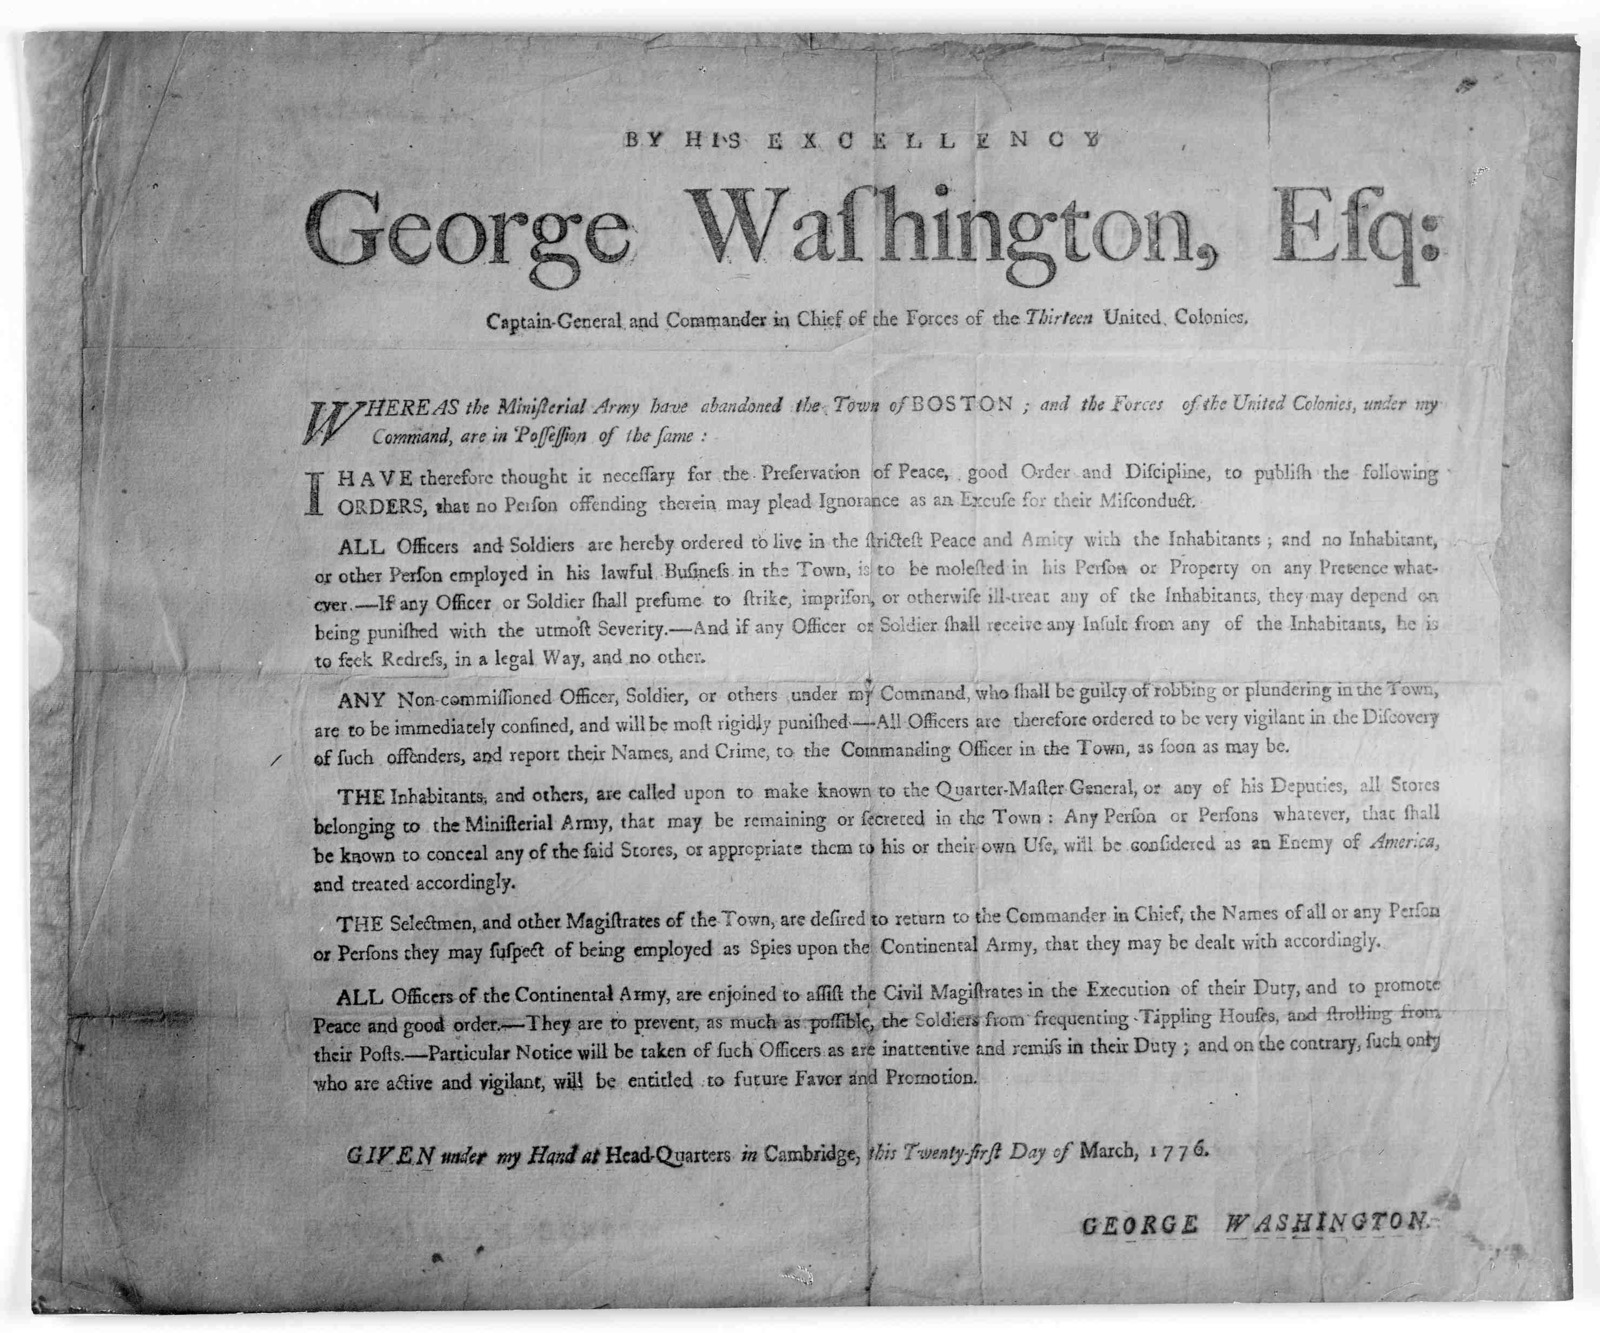 By His excellency, George Washington, Esq; Captain-General and Commander in chief of the forces of the thirteen United Colonies. Whereas the ministerial army abandoned the Town of Boston; and the forces of the United Colonies, under my command,